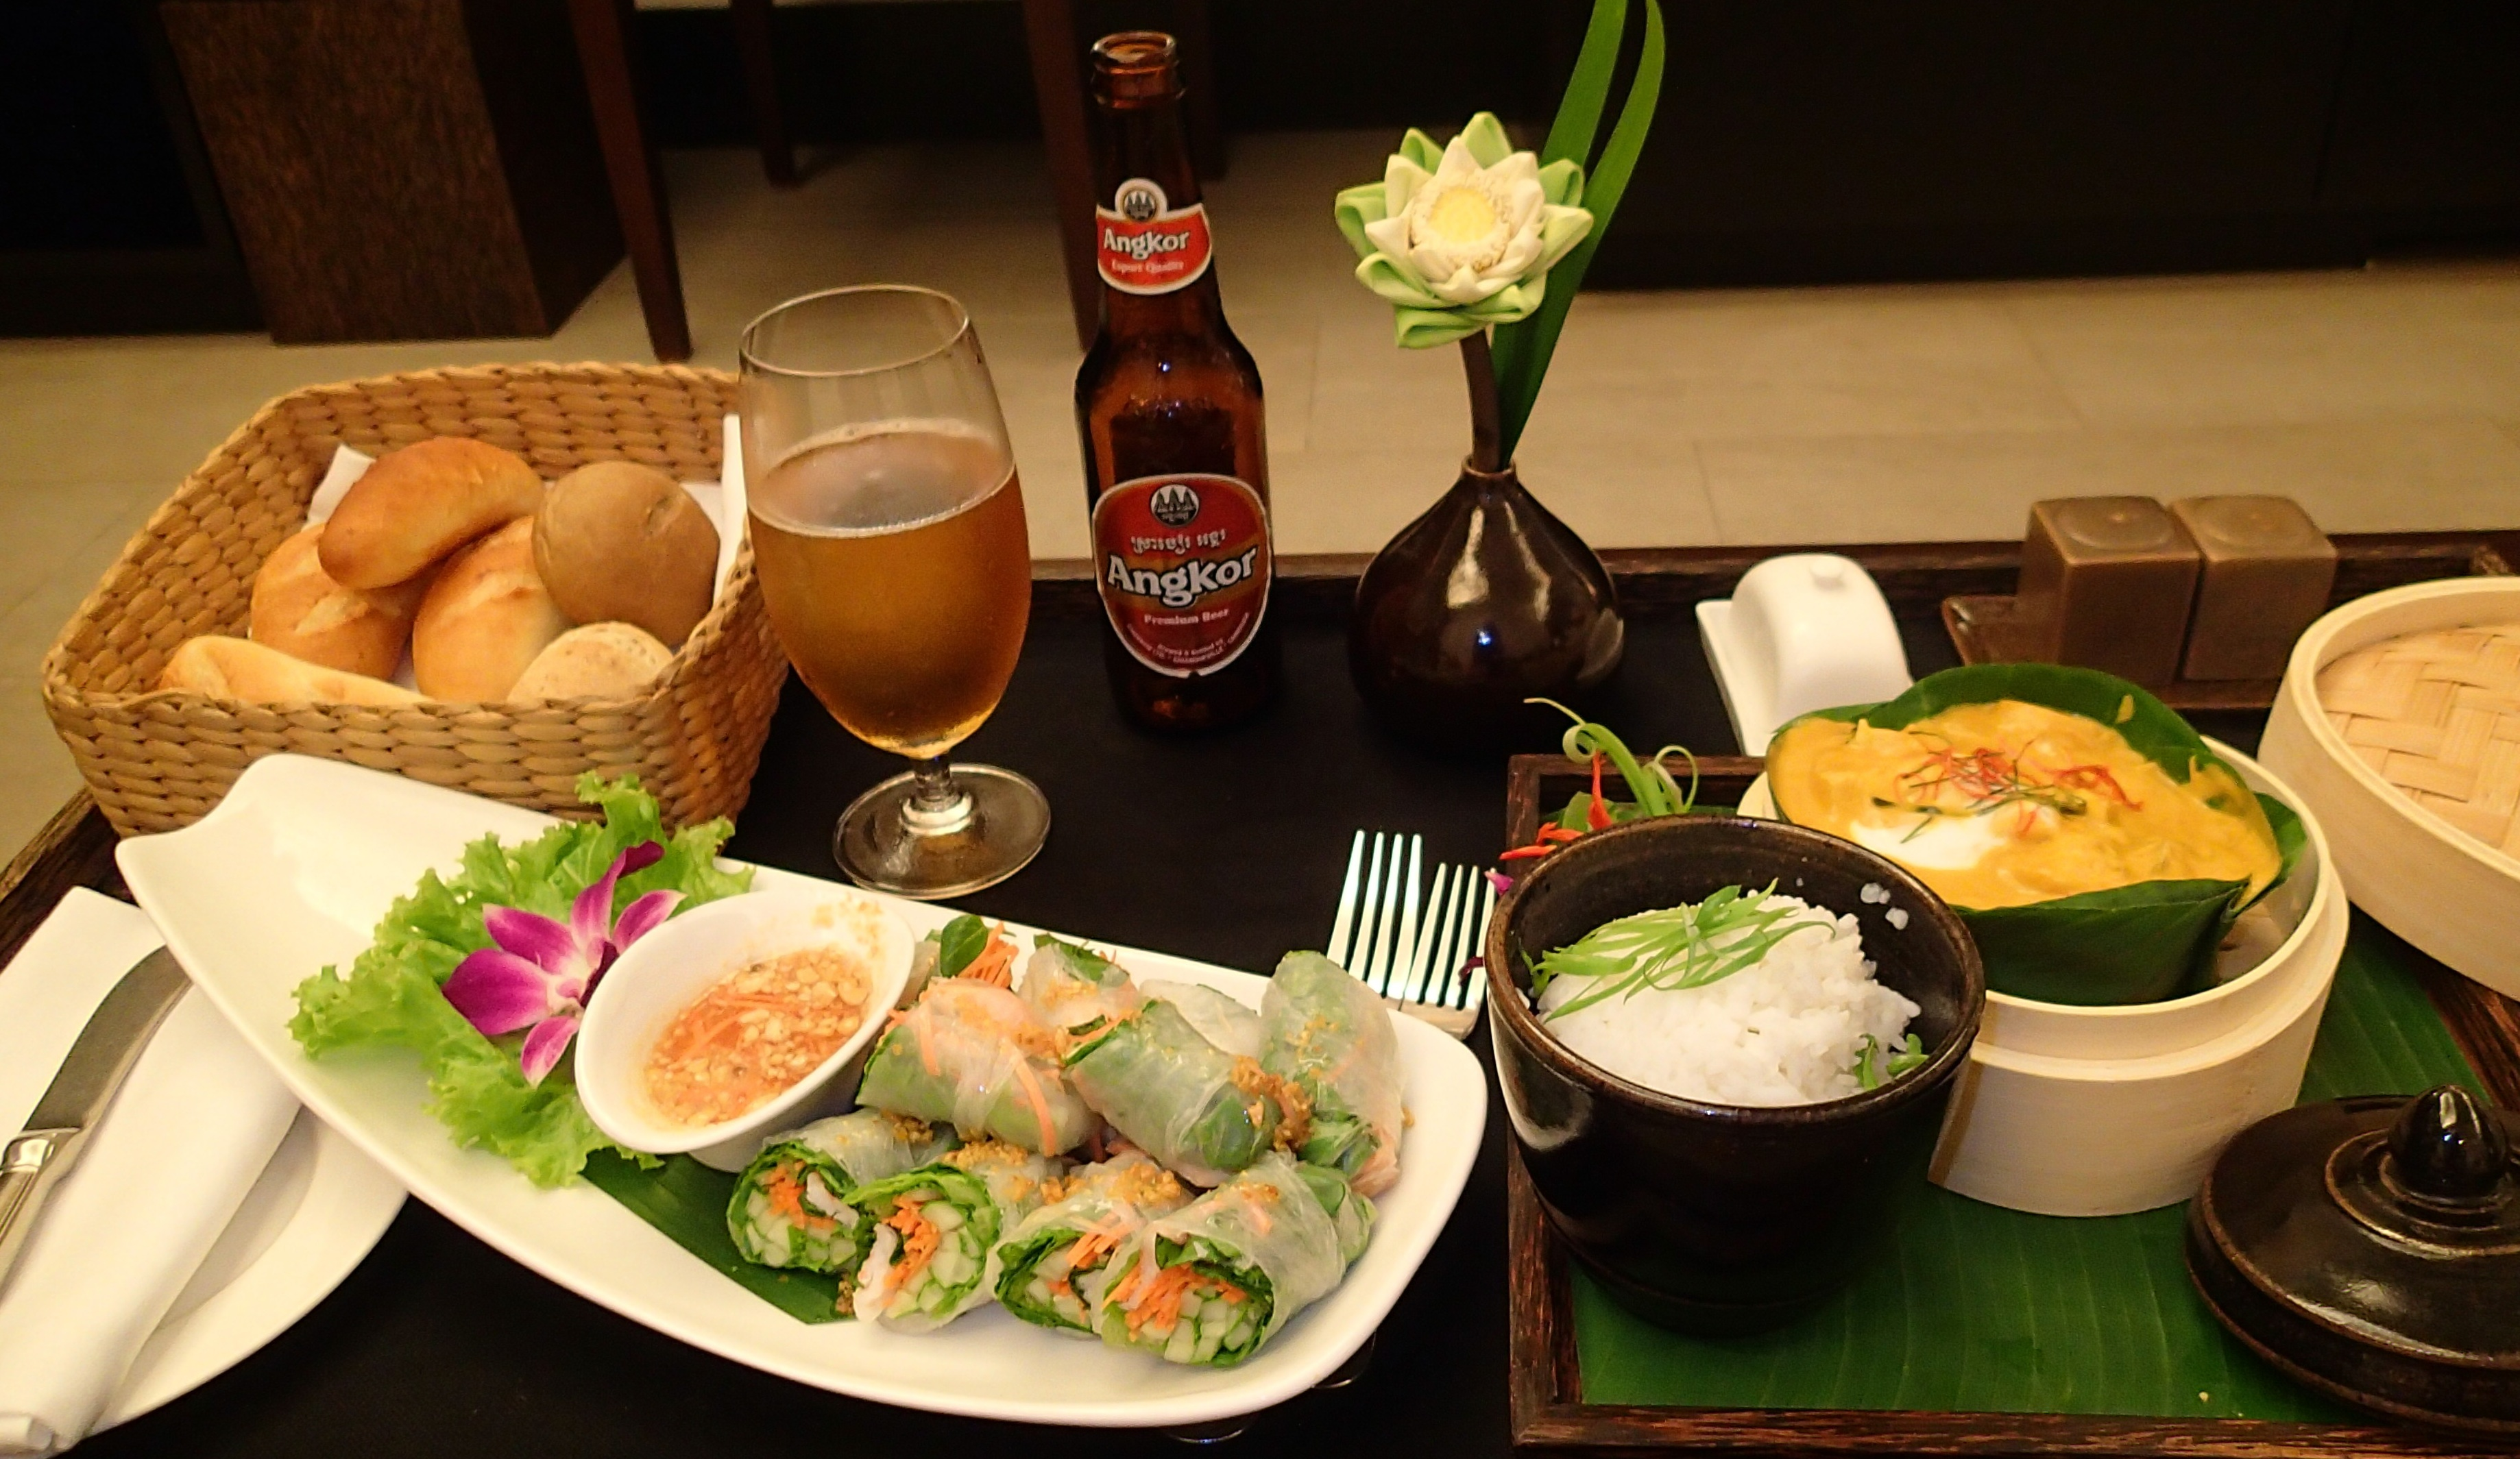 Siem reap a mini guide sybarite unlimited for Angkor borei cambodian cuisine